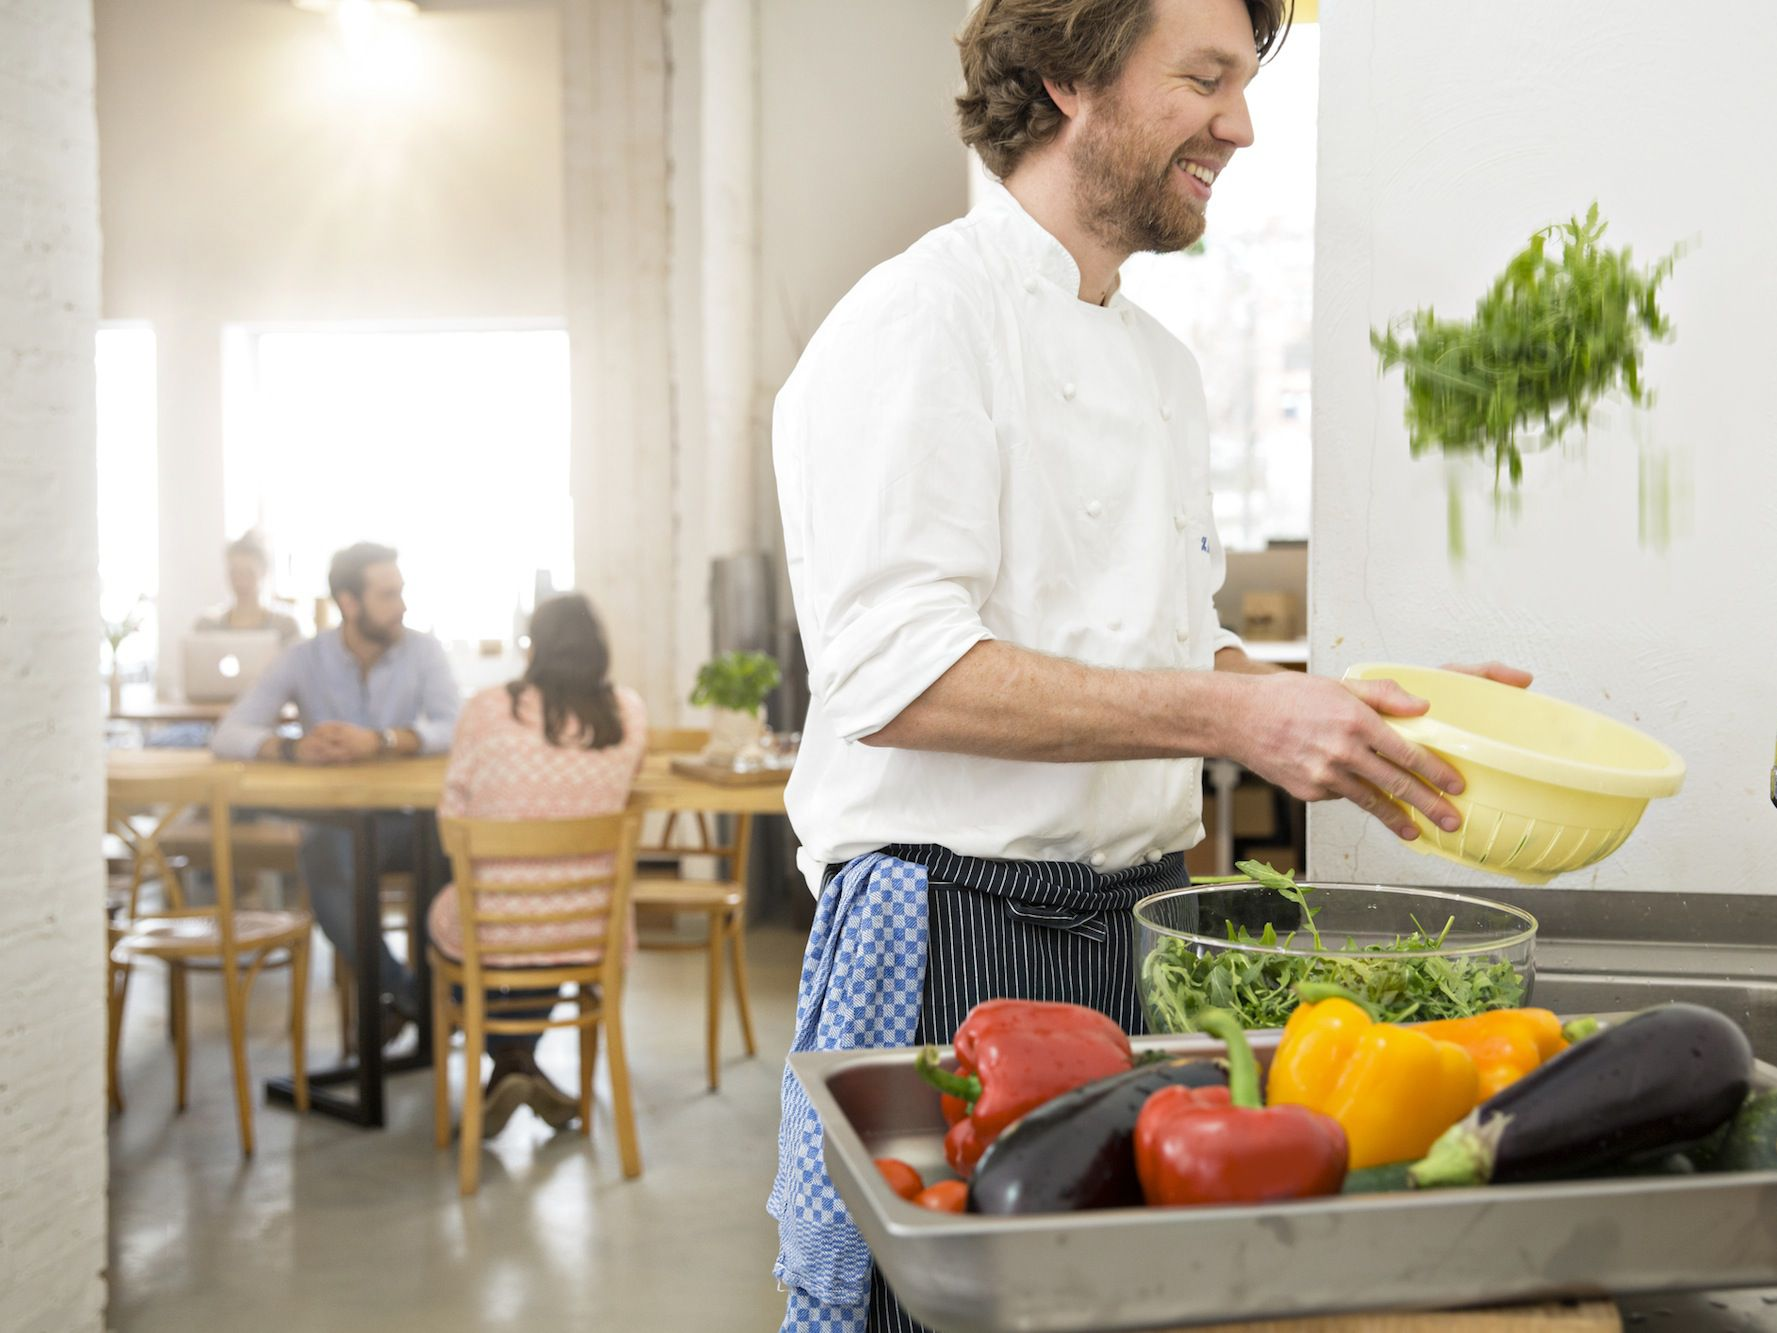 Benefits of Restaurants Buying and Serving Local Food